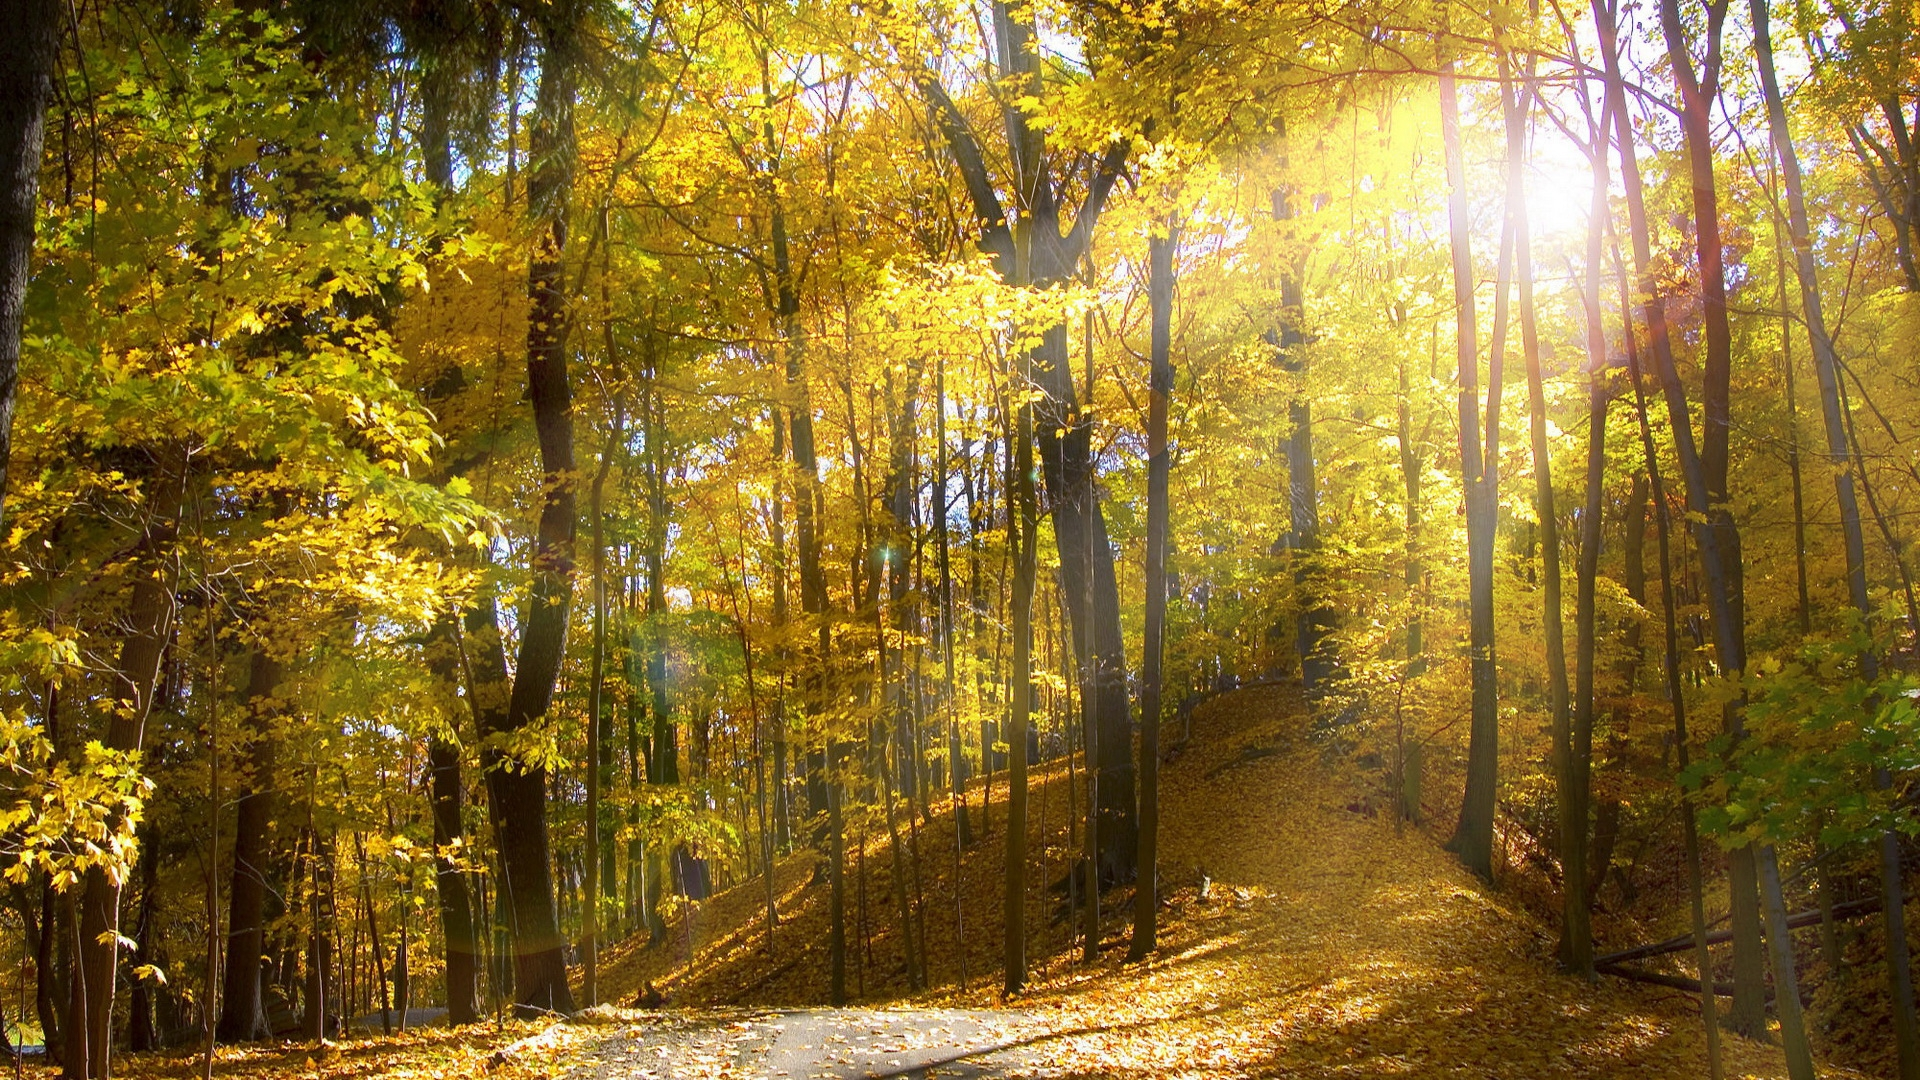 33963 download wallpaper Landscape, Trees, Autumn screensavers and pictures for free